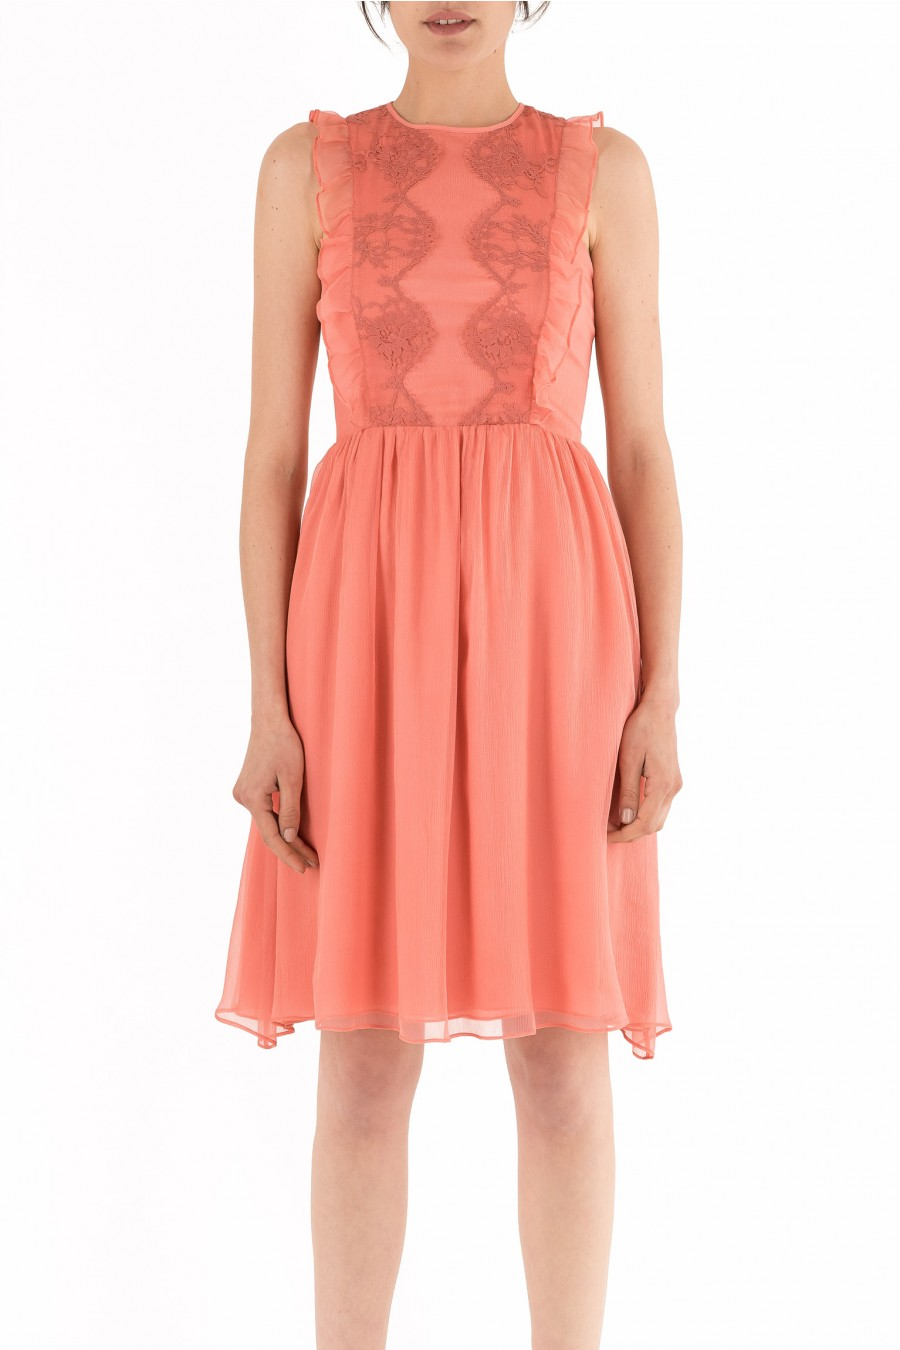 Peach silk dress with lace